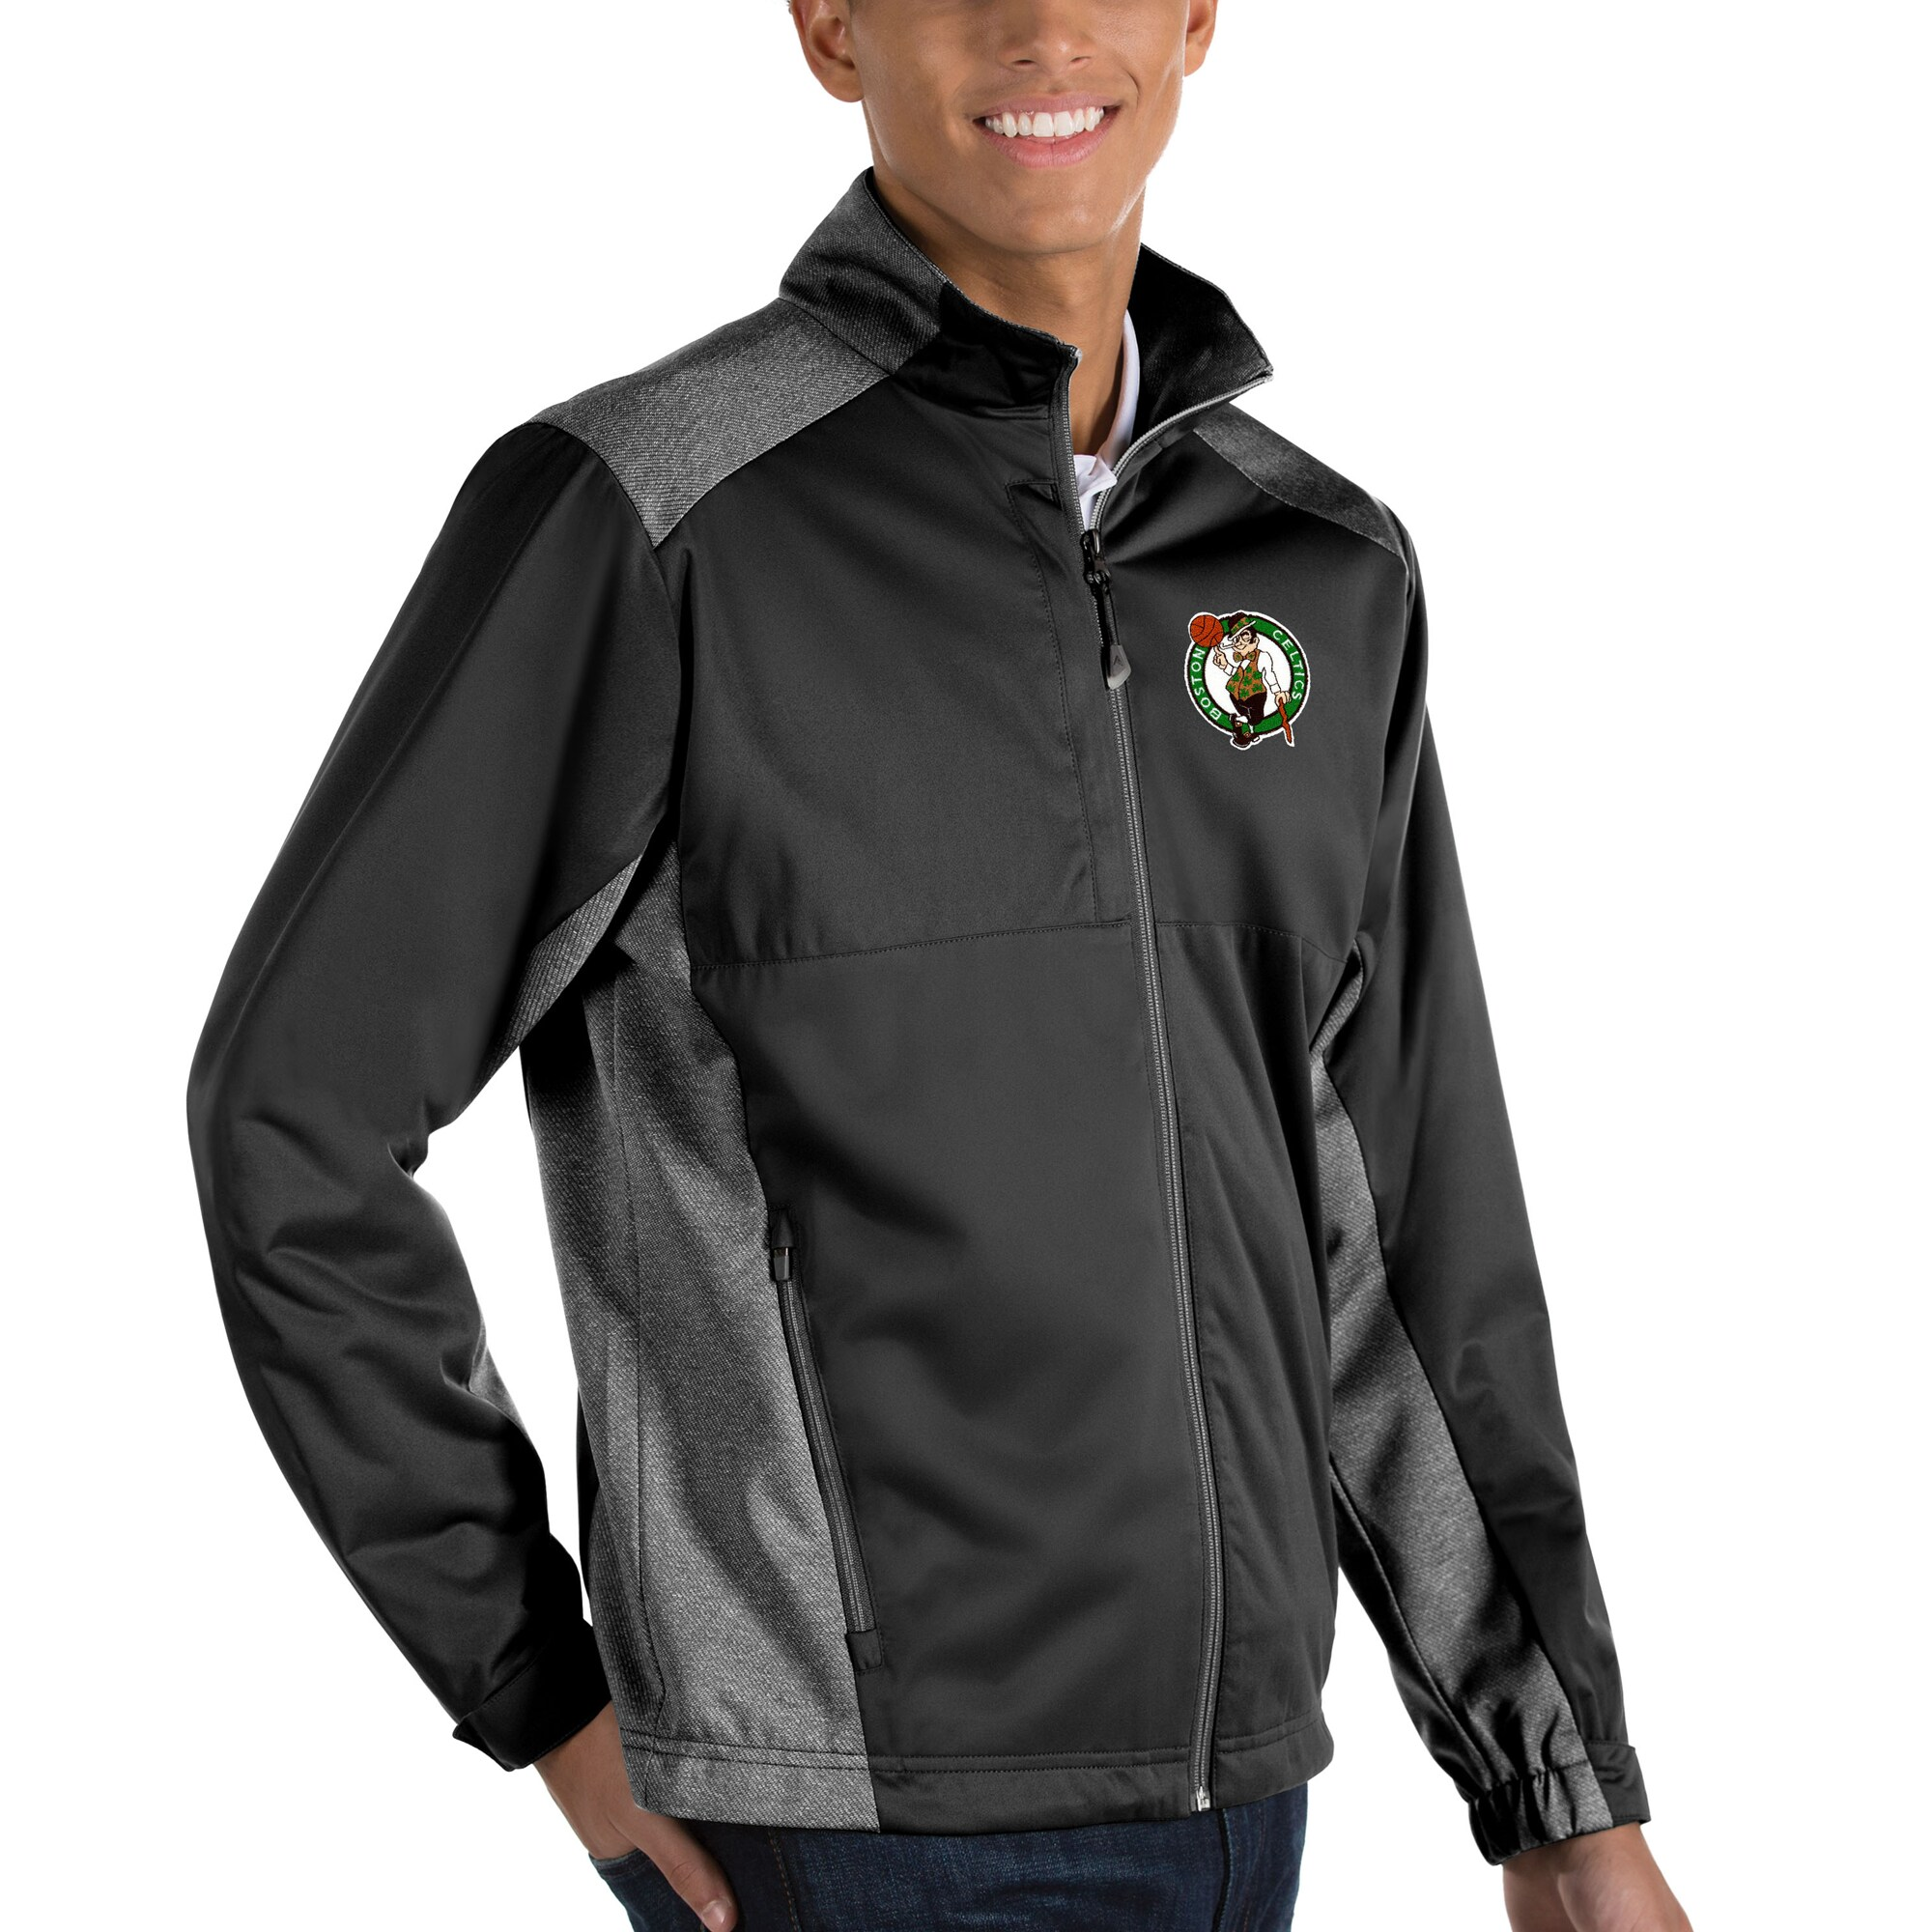 Boston Celtics Antigua Revolve Full-Zip Jacket - Black